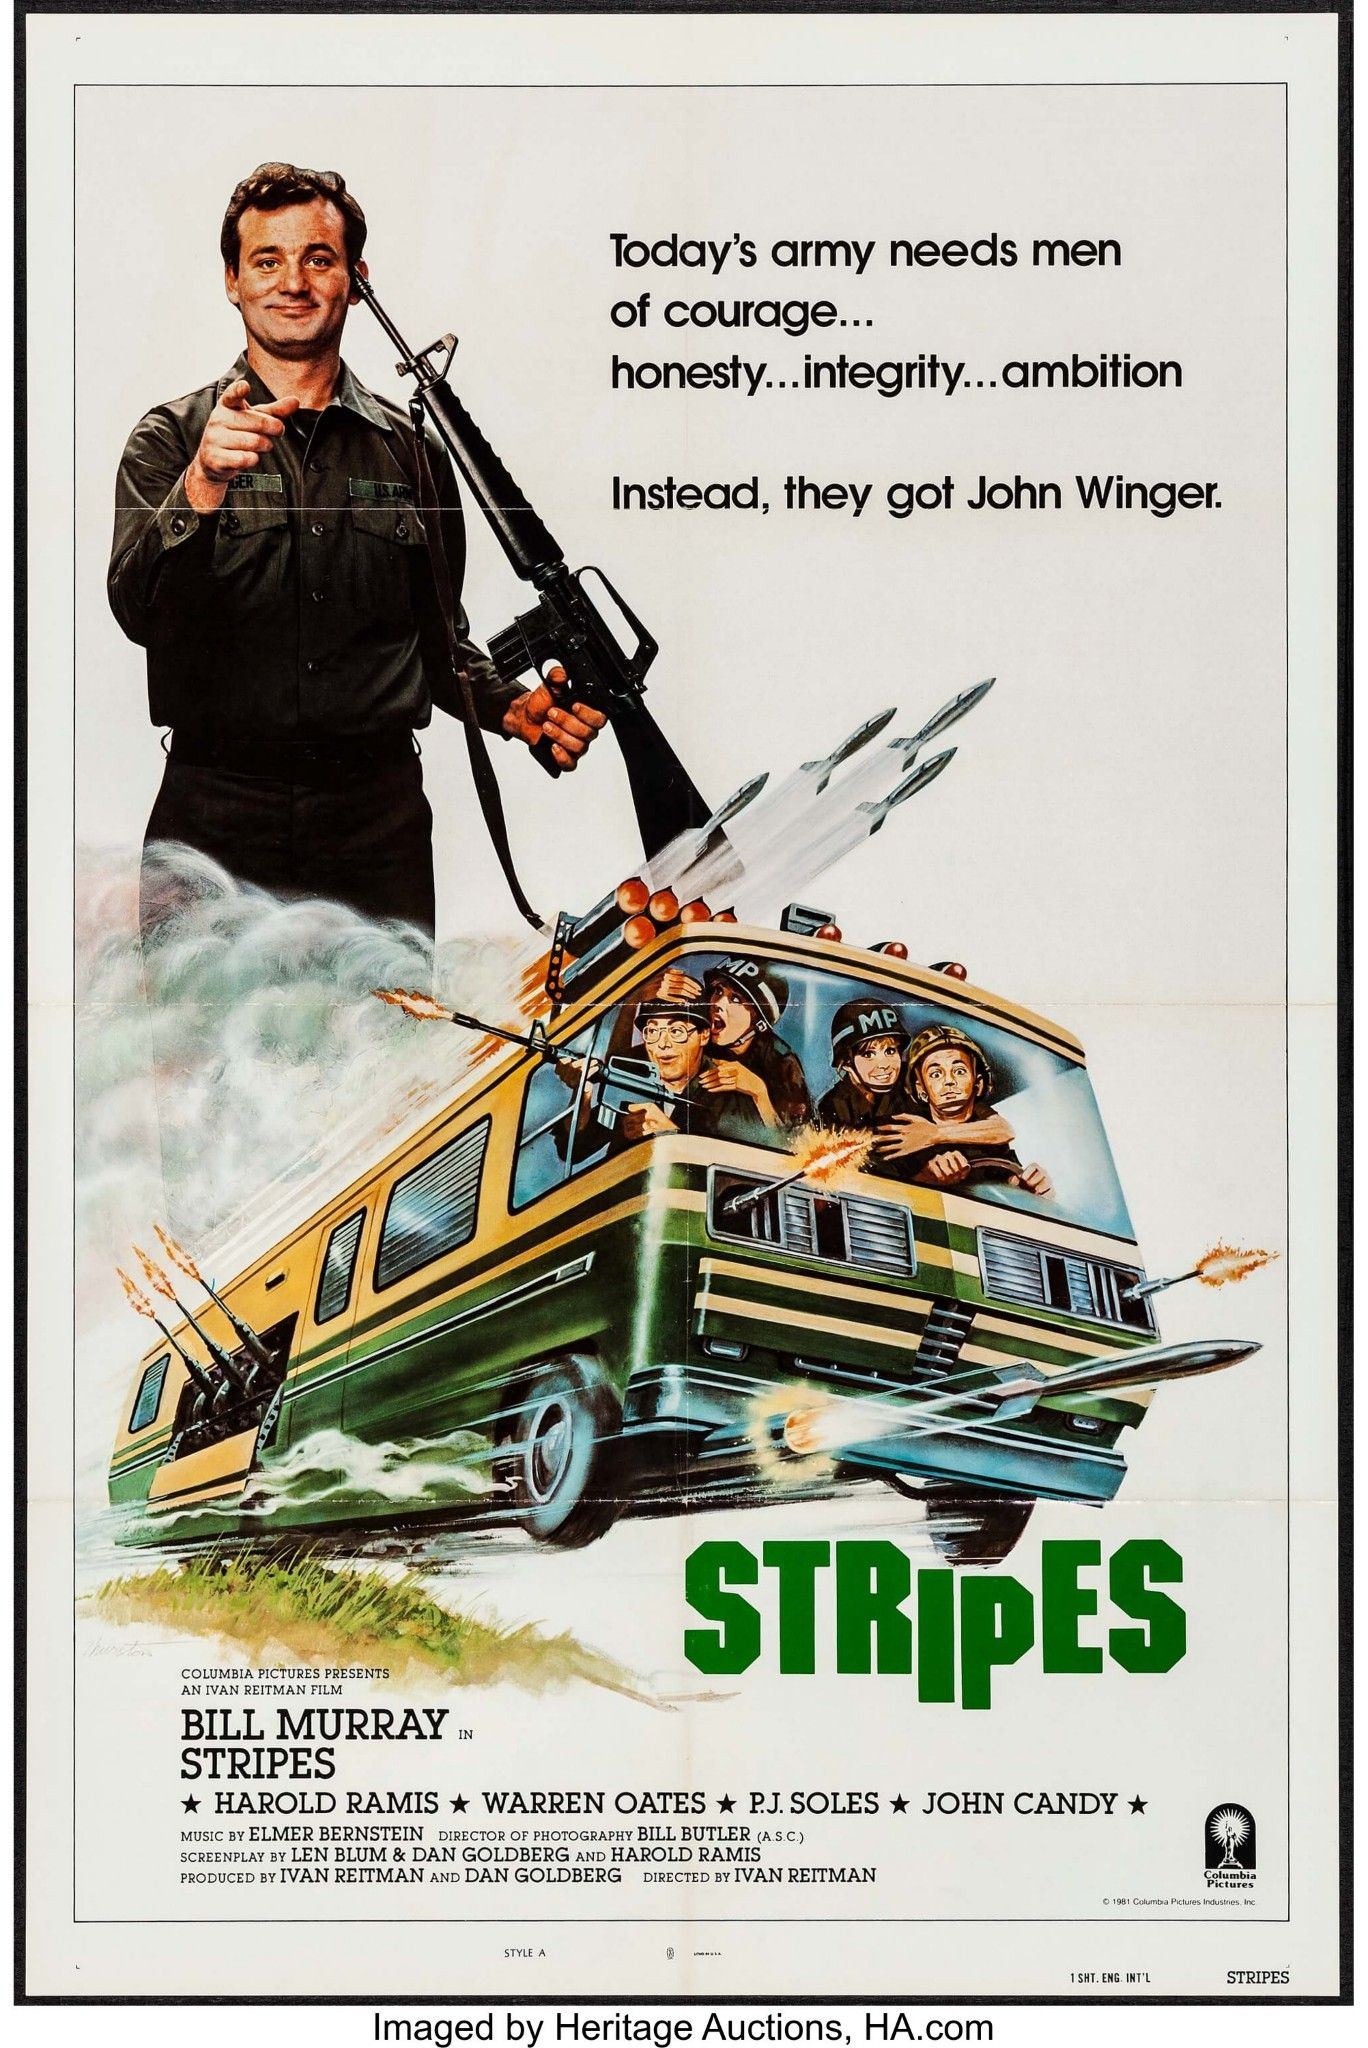 STRIPES (1981) Classic Movie Posters, Movie Poster Art, Best Movie Posters,